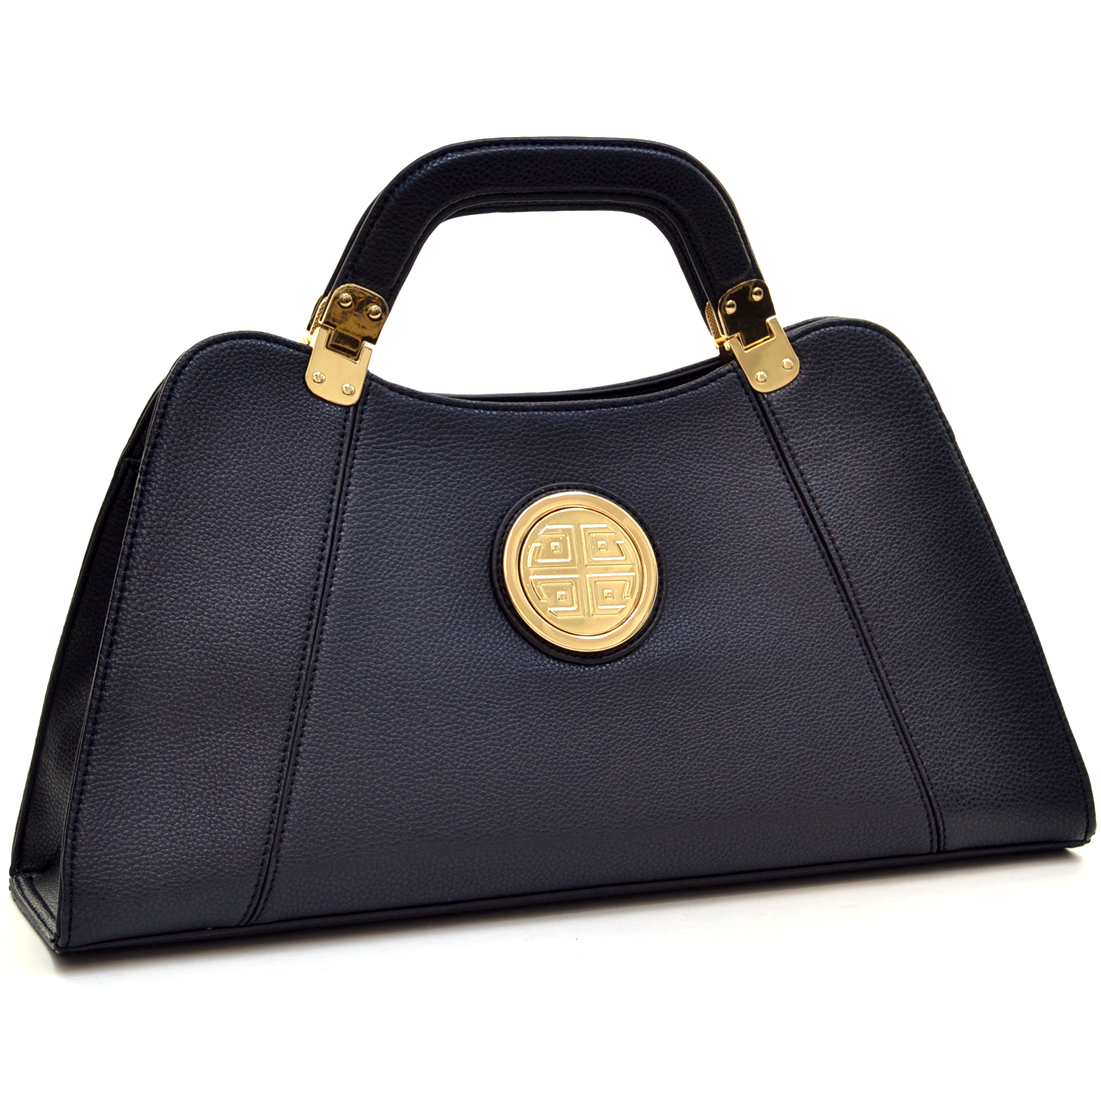 Dasein® Emblem Flat Bottom A-Symmetrical Handbag with Removable Shoulder Strap